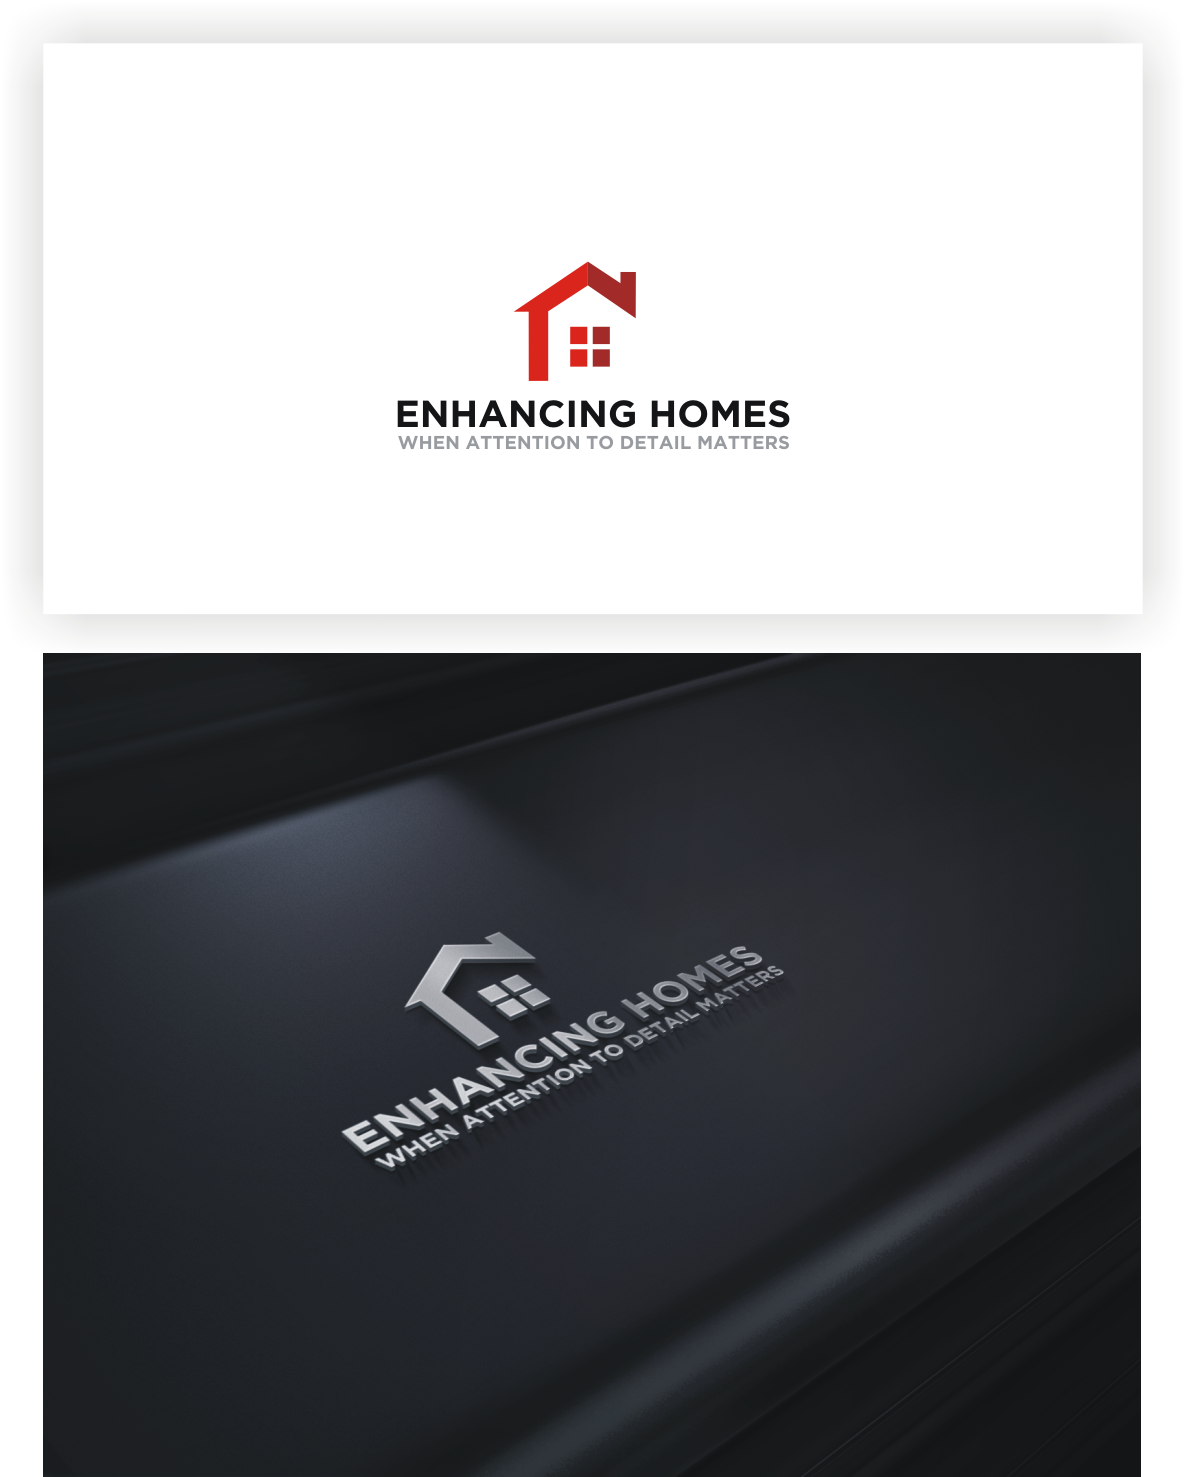 logo and business card for enhancing homes